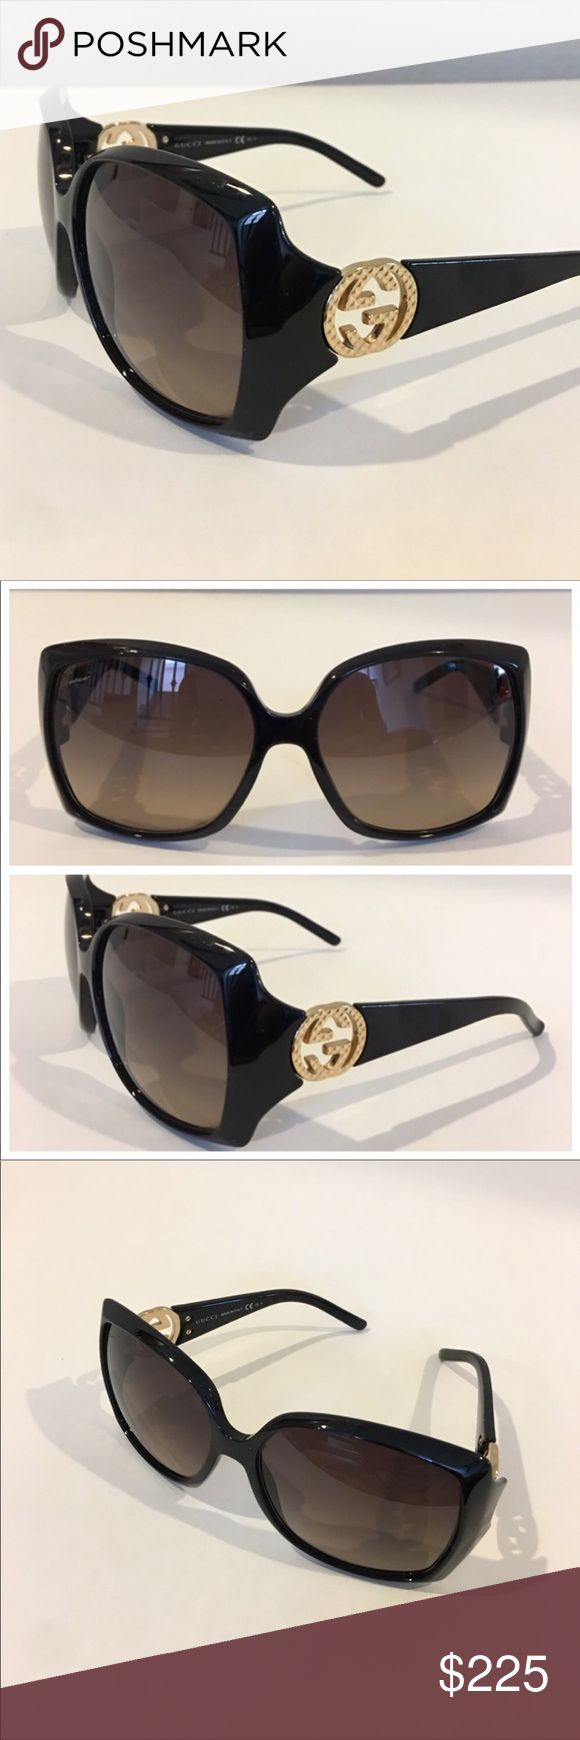 Authentic GUCCI brown sunglasses Rare and sold out. Authentic brown GUCCI  sunglasses.  Model GG3503/S, made in Italy. In gently worn preowned condition with light scratches on lens and frame. See listing for authenticity markings and measurements. No case. Please ask questions prior to purchase. 🚫trades, reasonable offers only. Gucci Accessories Sunglasses